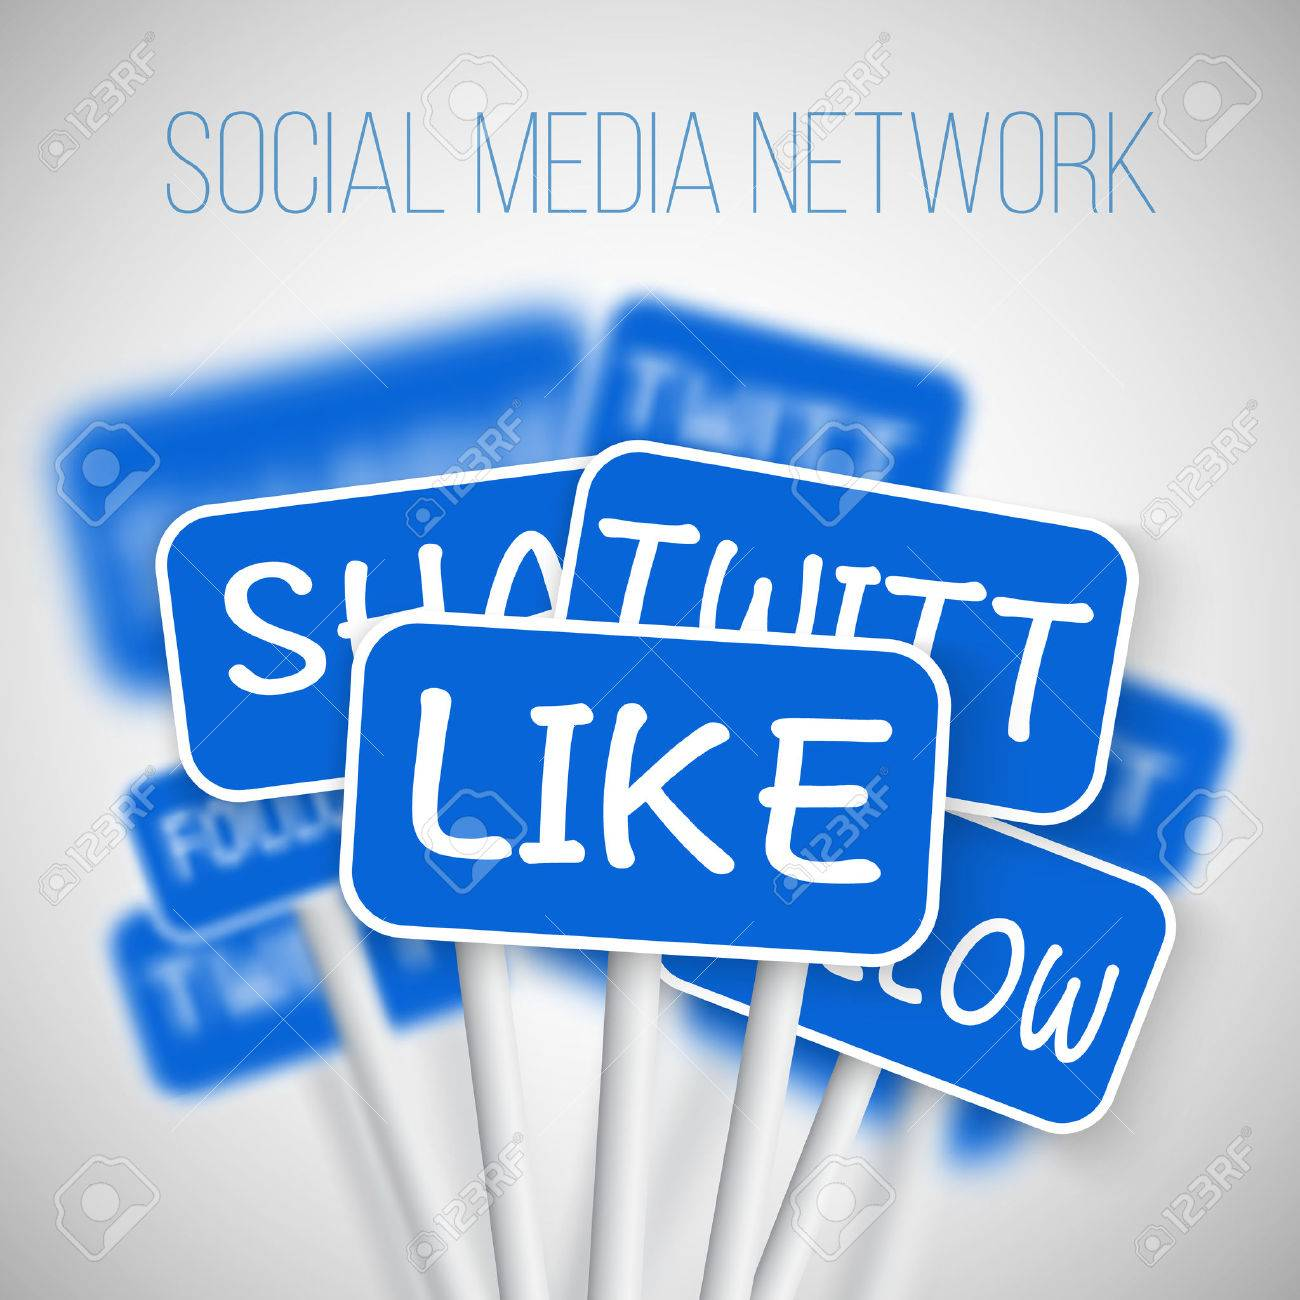 Illustration of Set of Social Media Network Road Signs. include Like Share, Follow. For your Social Media Banner, Icon, Blog or Social Media Advertising. - 50459942